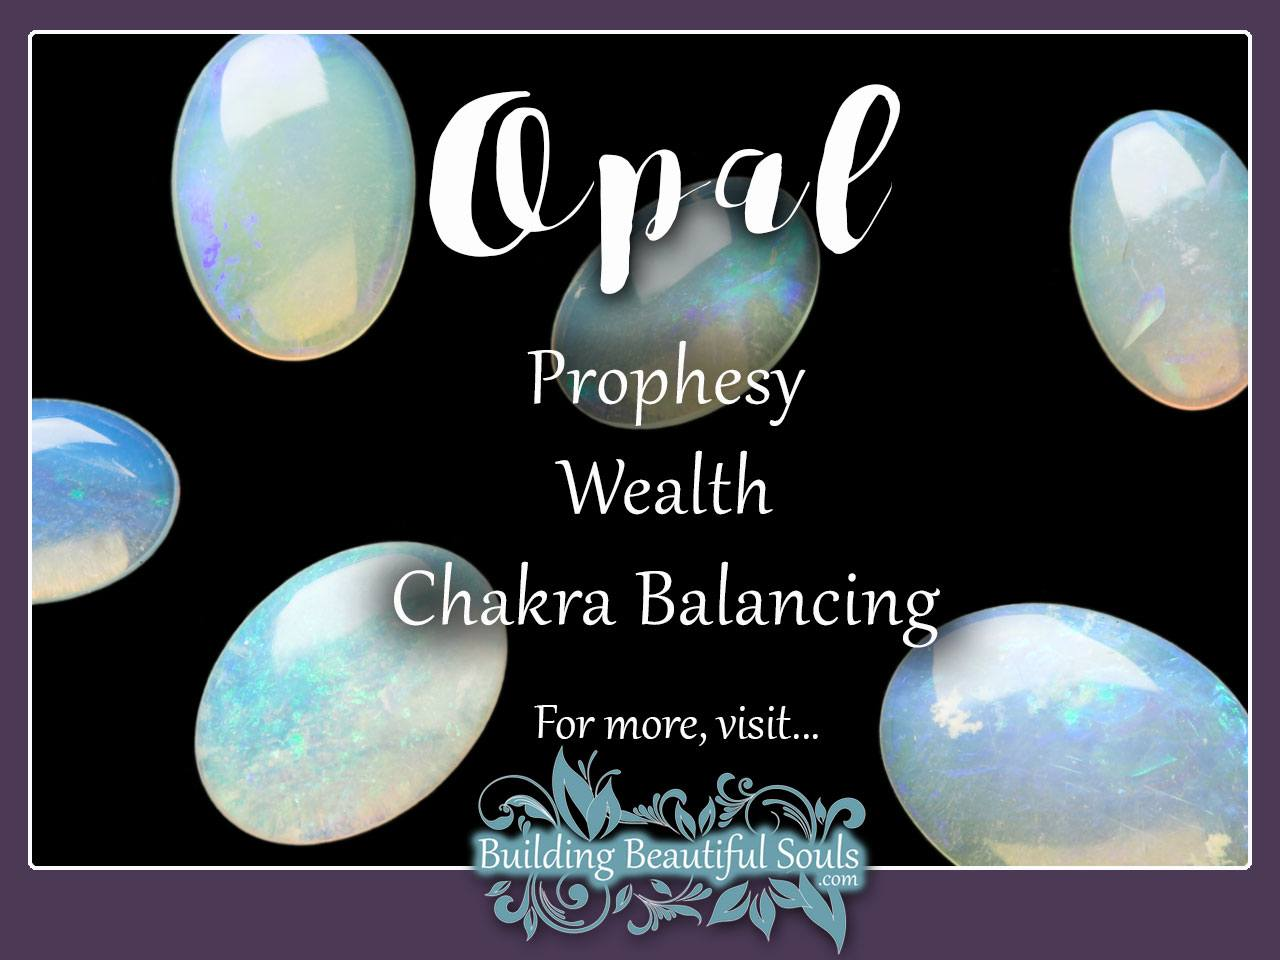 fire opal metaphysical meaning